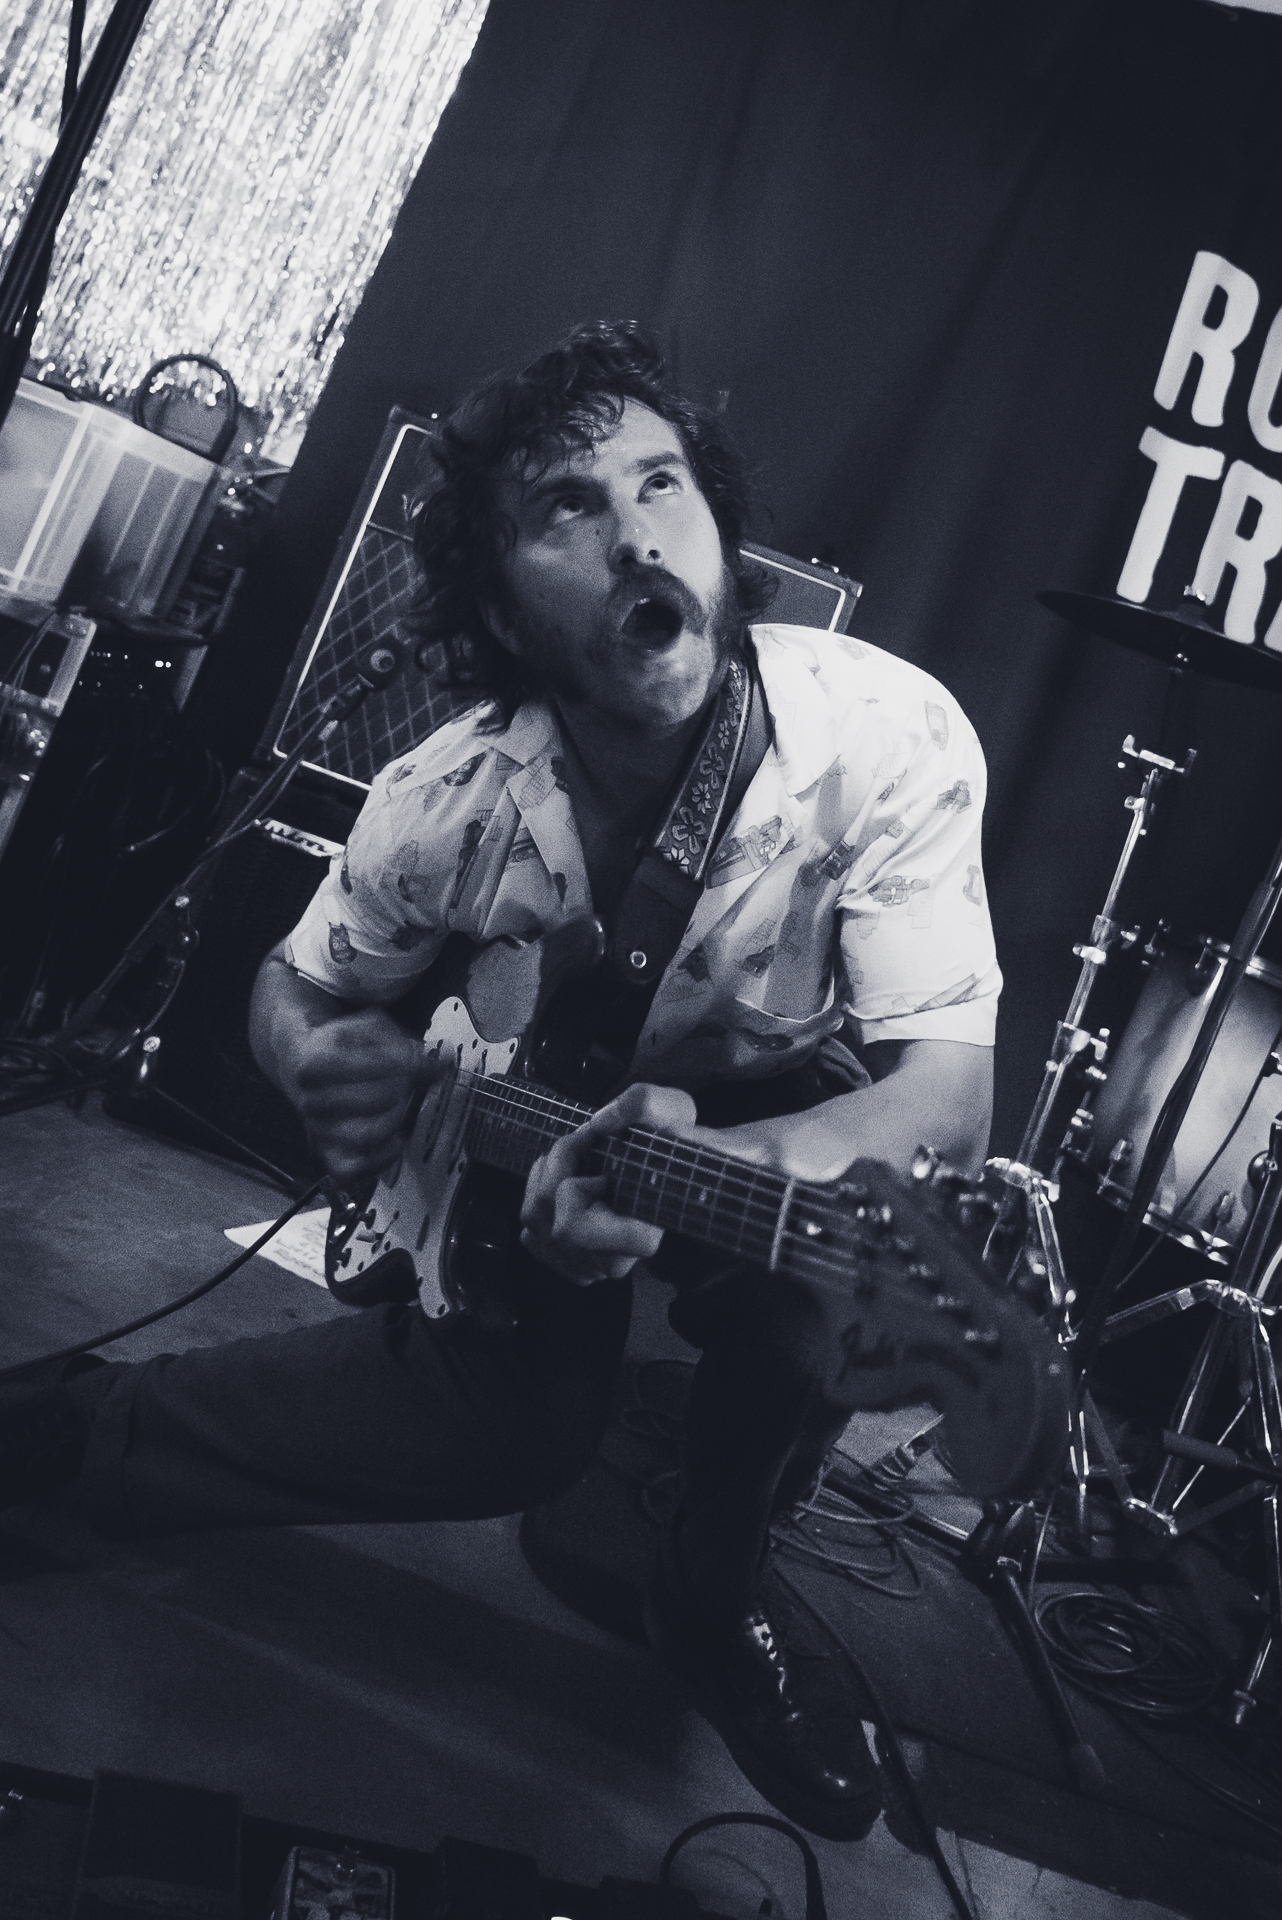 Idles at Rough Trade